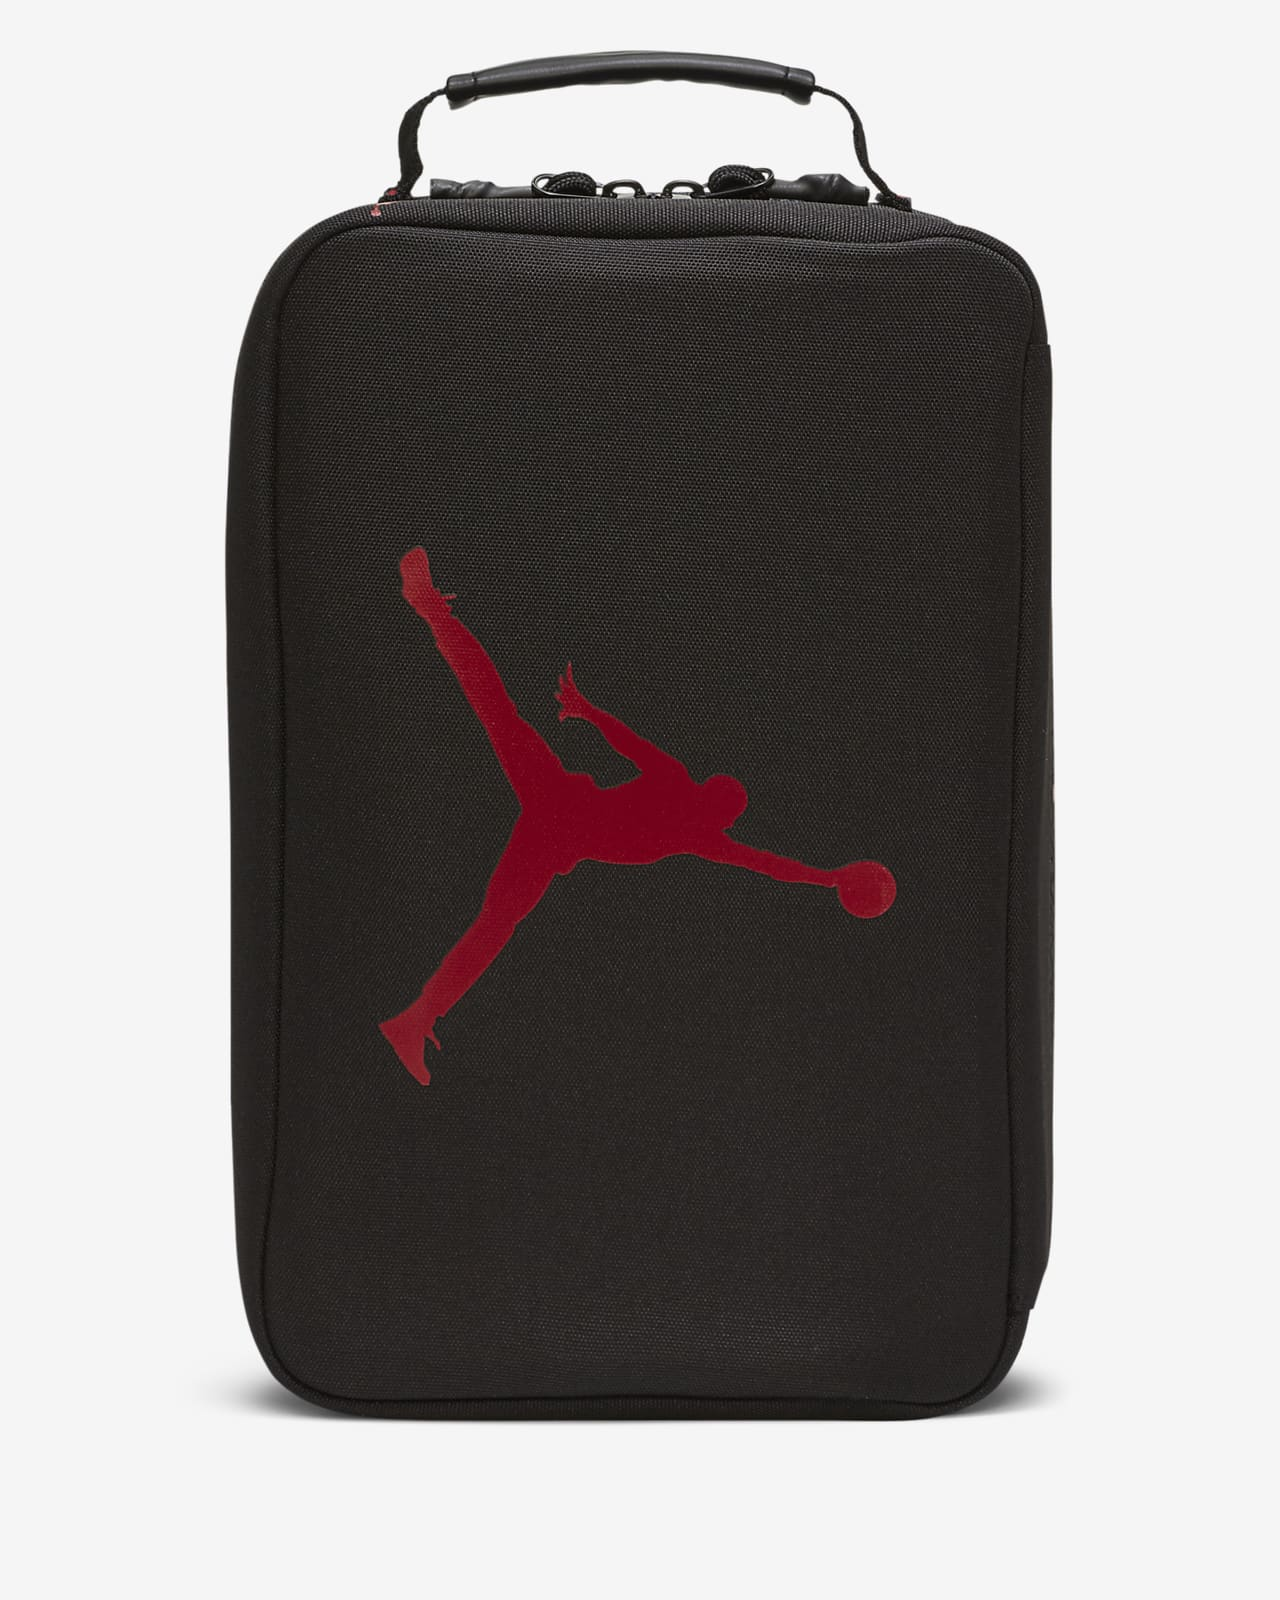 Jordan Shoebox Bag